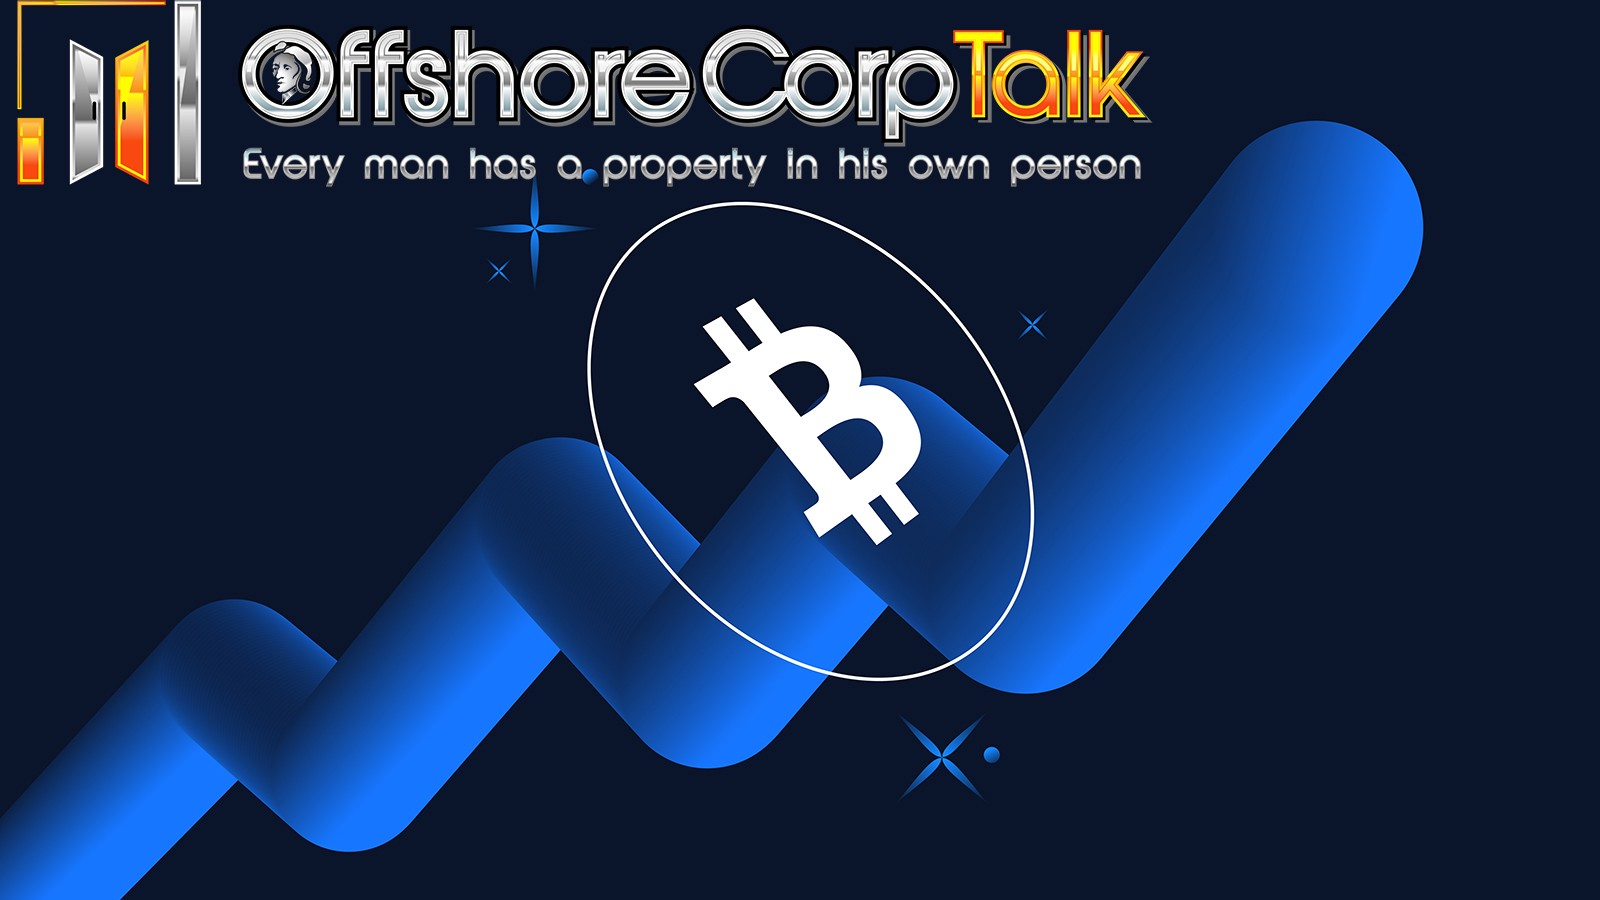 OffshoreCorpTalk.com the worlds largest forum for Offshore Company Formation